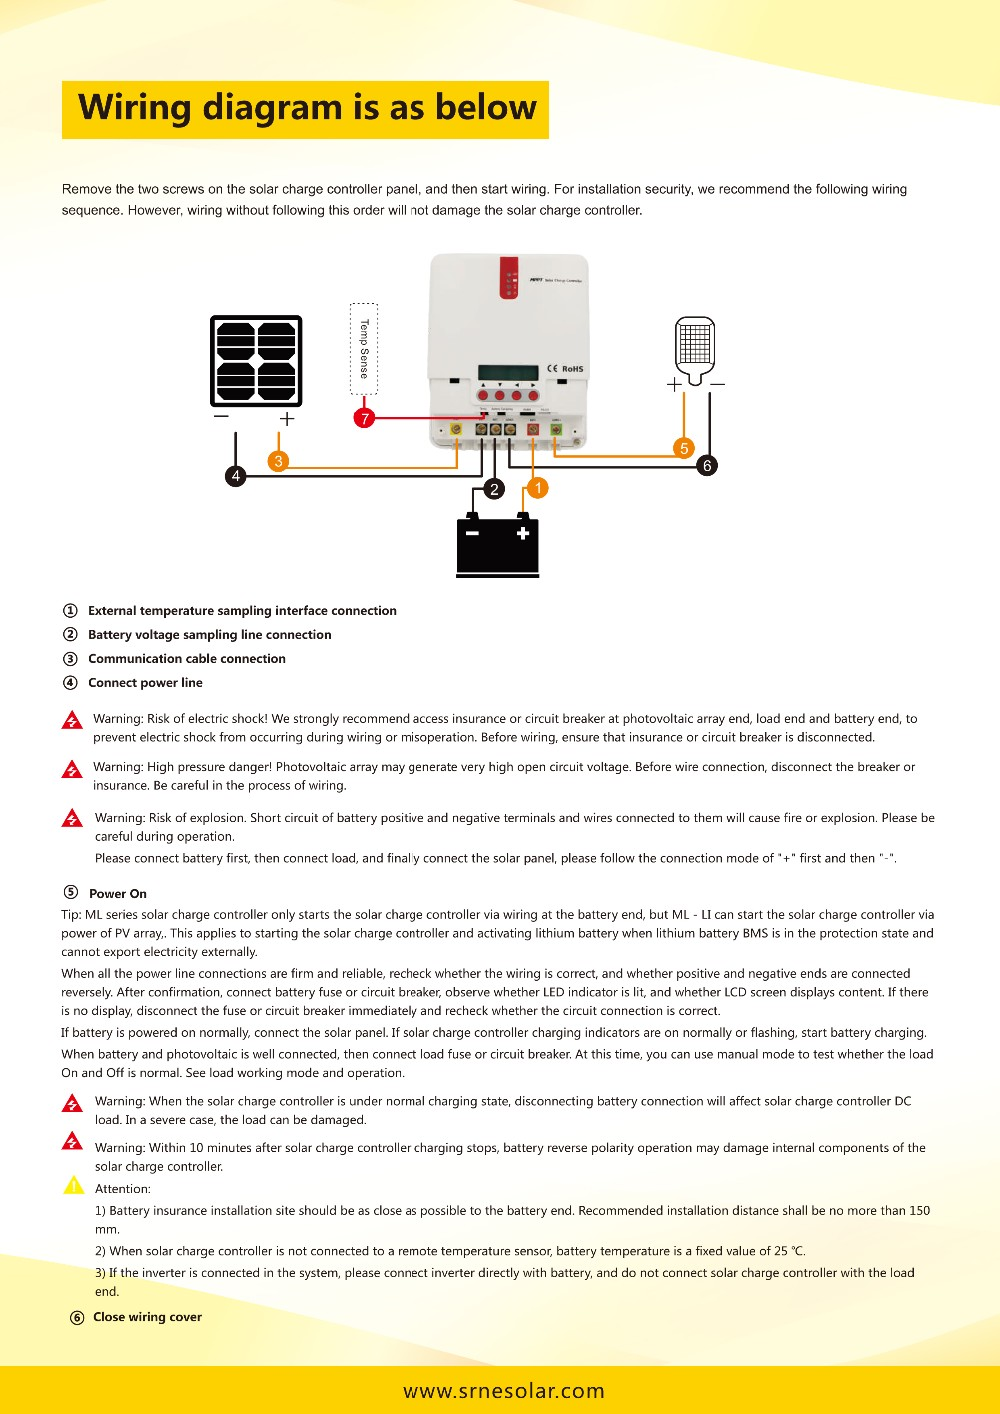 Ml Series Mppt Solar Charge Controller Hot Welcomed For Home Wiring Diagram Application